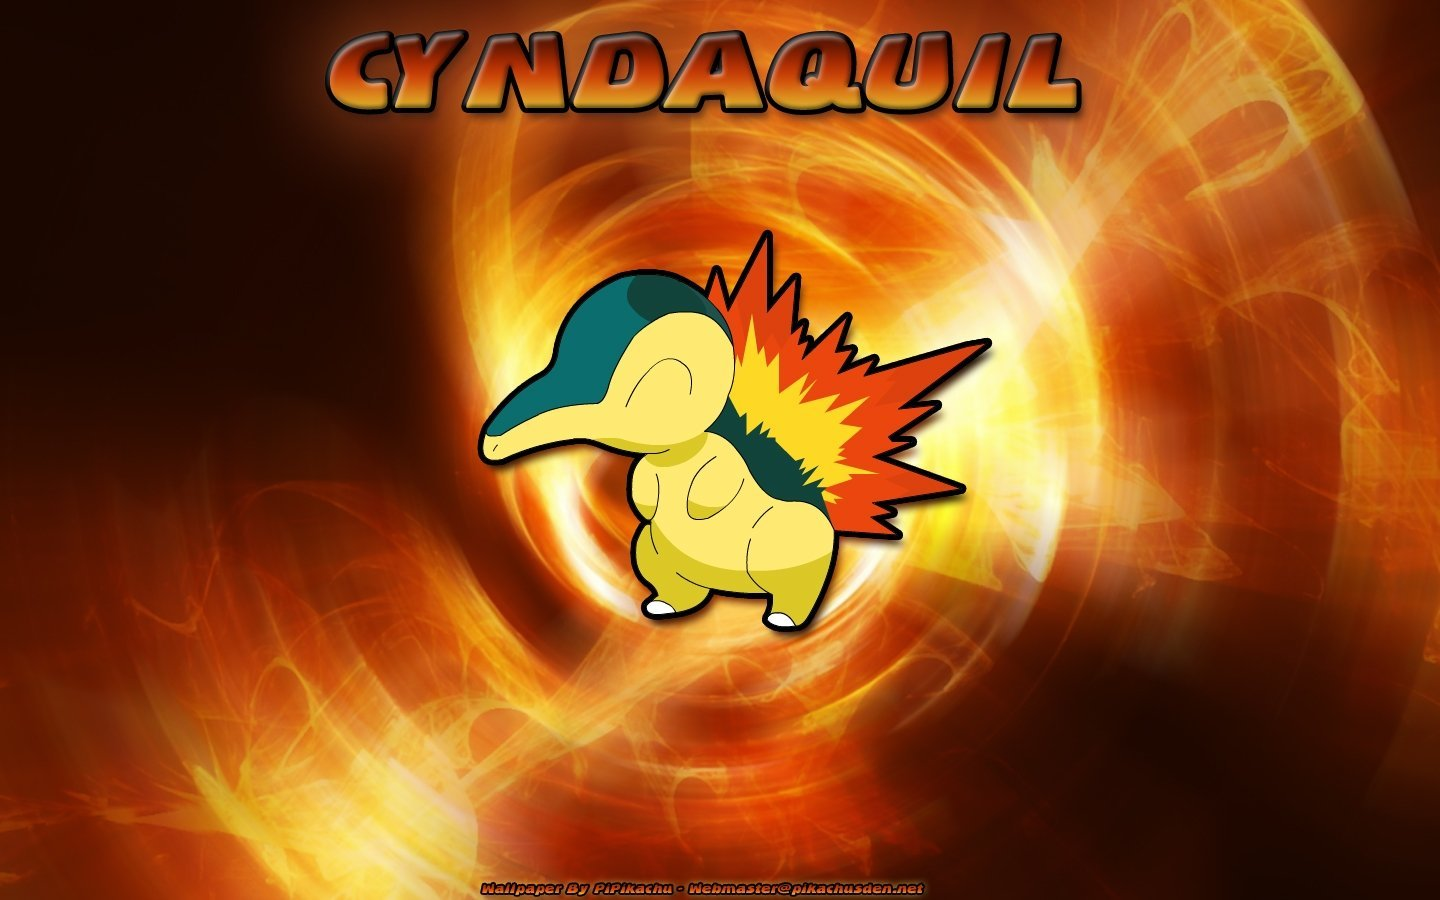 Awesome Cyndaquil (Pokemon) free wallpaper ID:278965 for hd 1440x900 computer